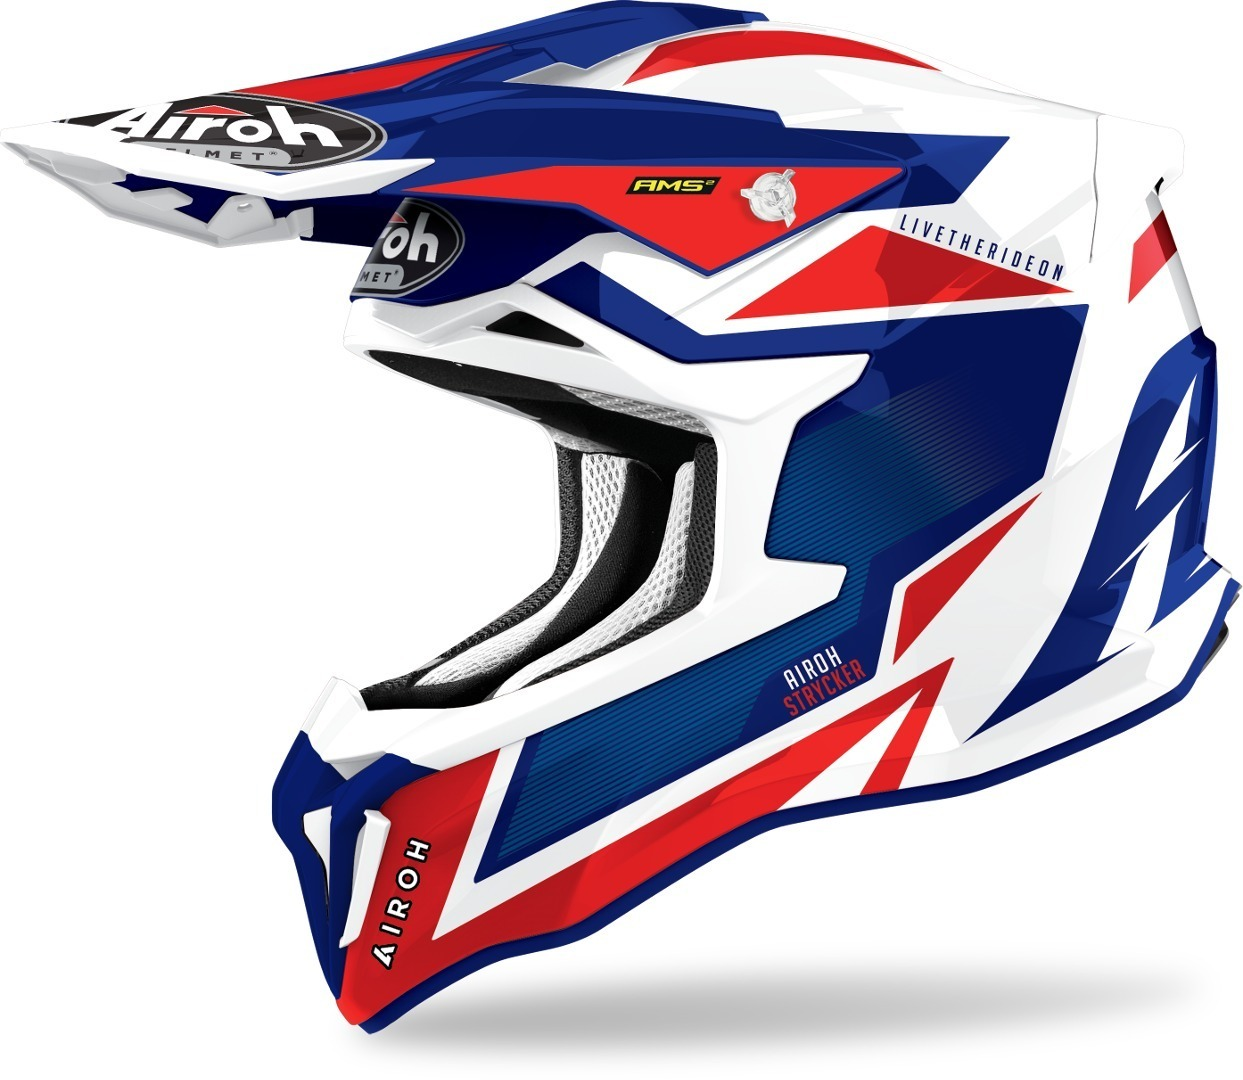 Airoh Strycker Axe Carbon Motocross Helmet, red-blue, Size M, red-blue, Size M